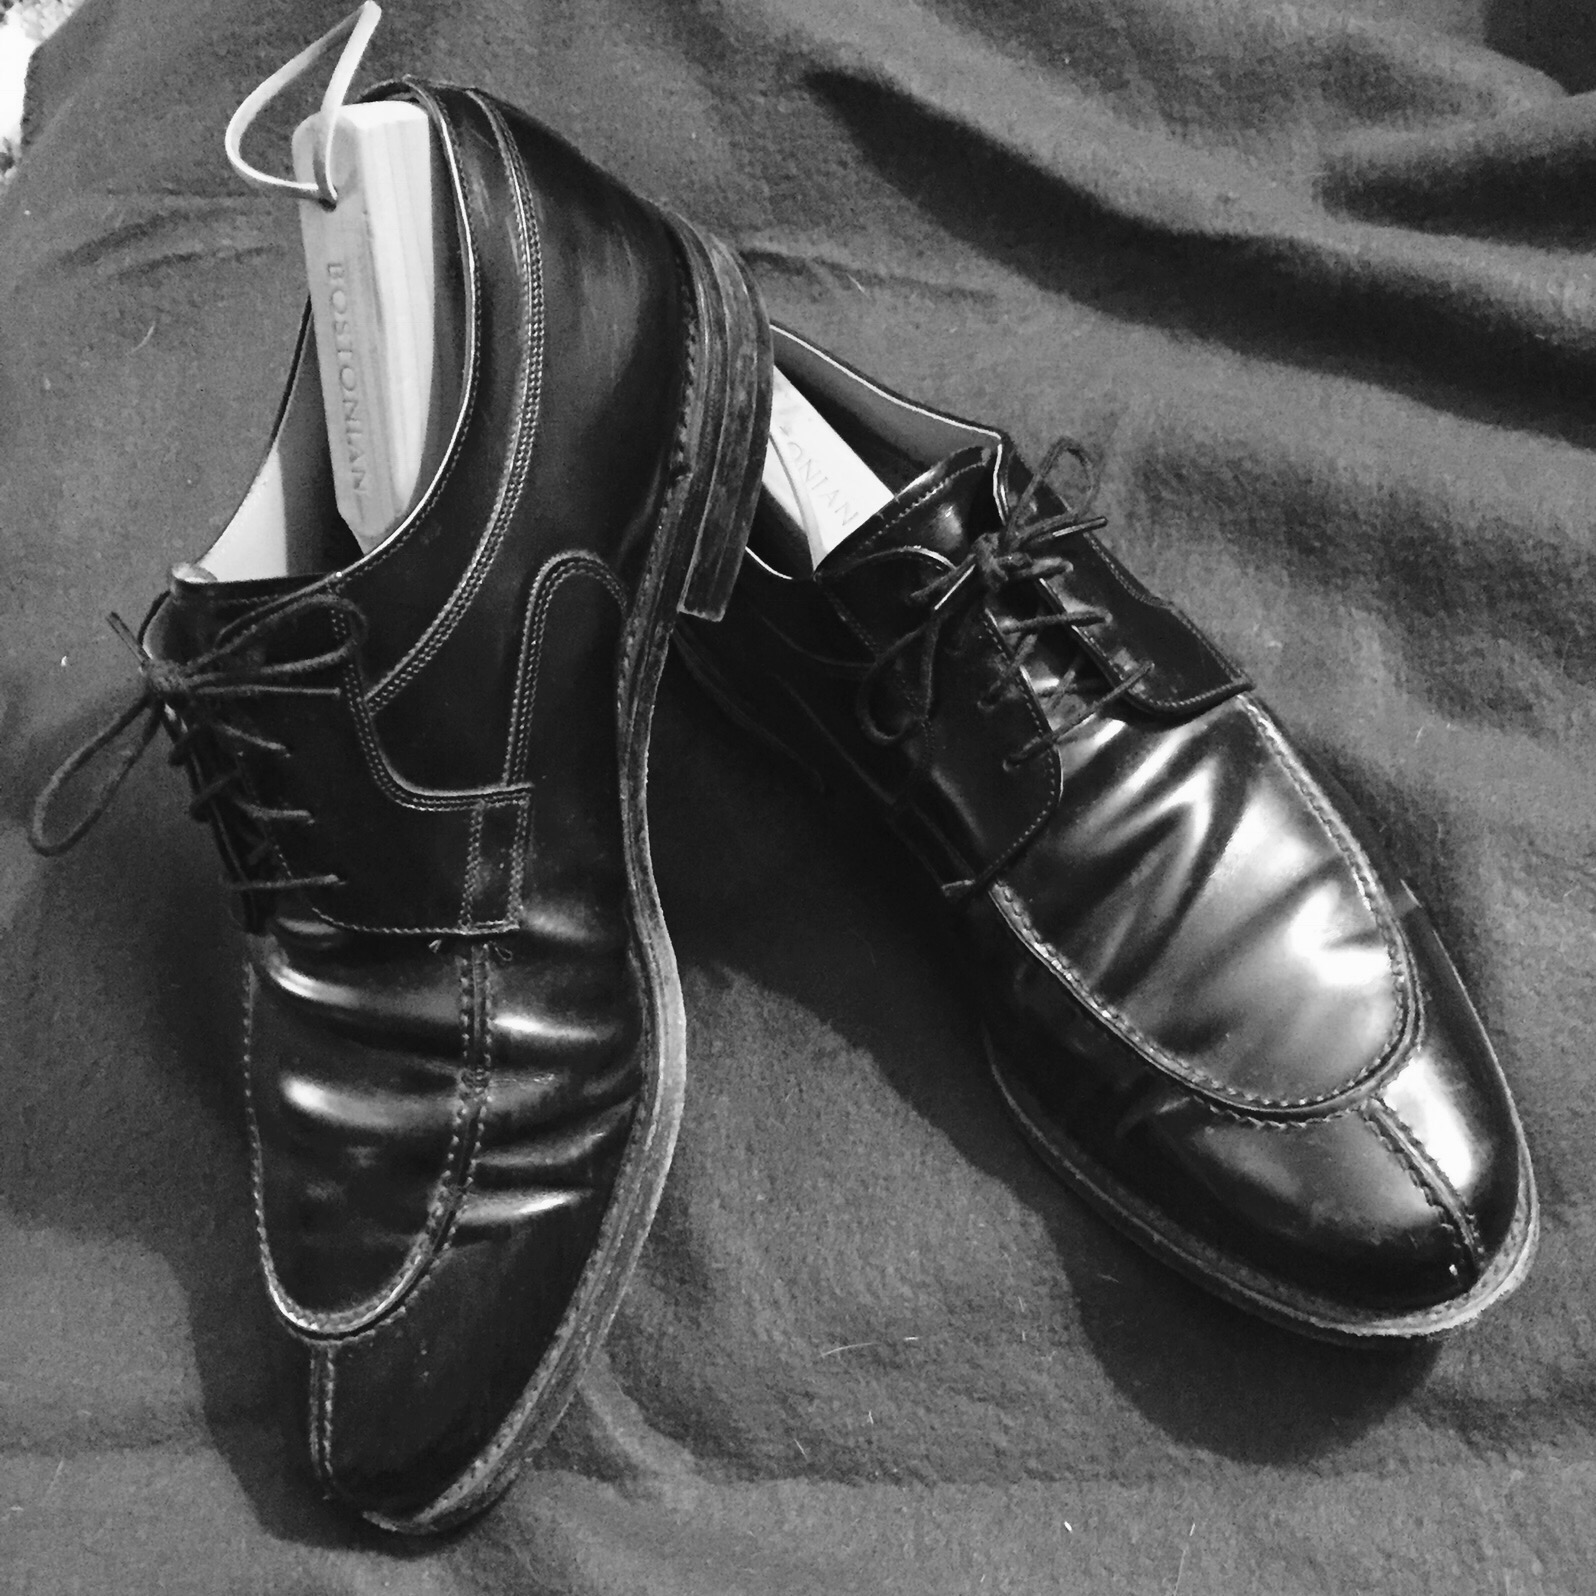 Black Johnston and Murphy Oxfords - Pre-Shine